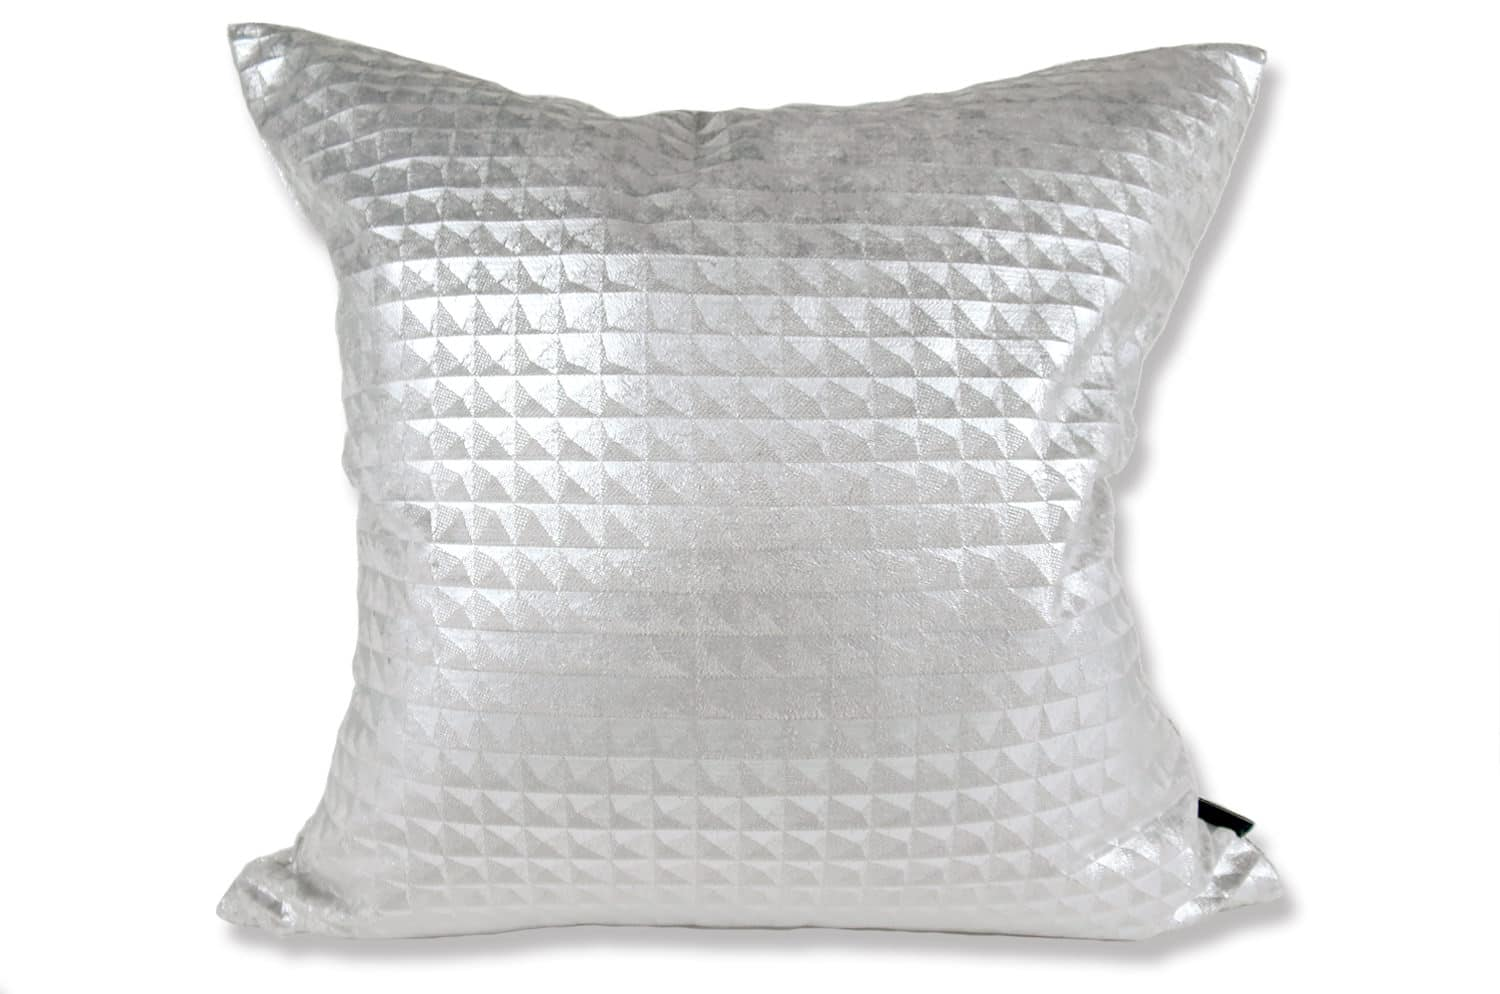 The Moonlit Pyramid Silver cushion by Kirkby Design x ELEY KISHIMOTO(イーリー キシモト)fabric クッションカバー 50×50cm